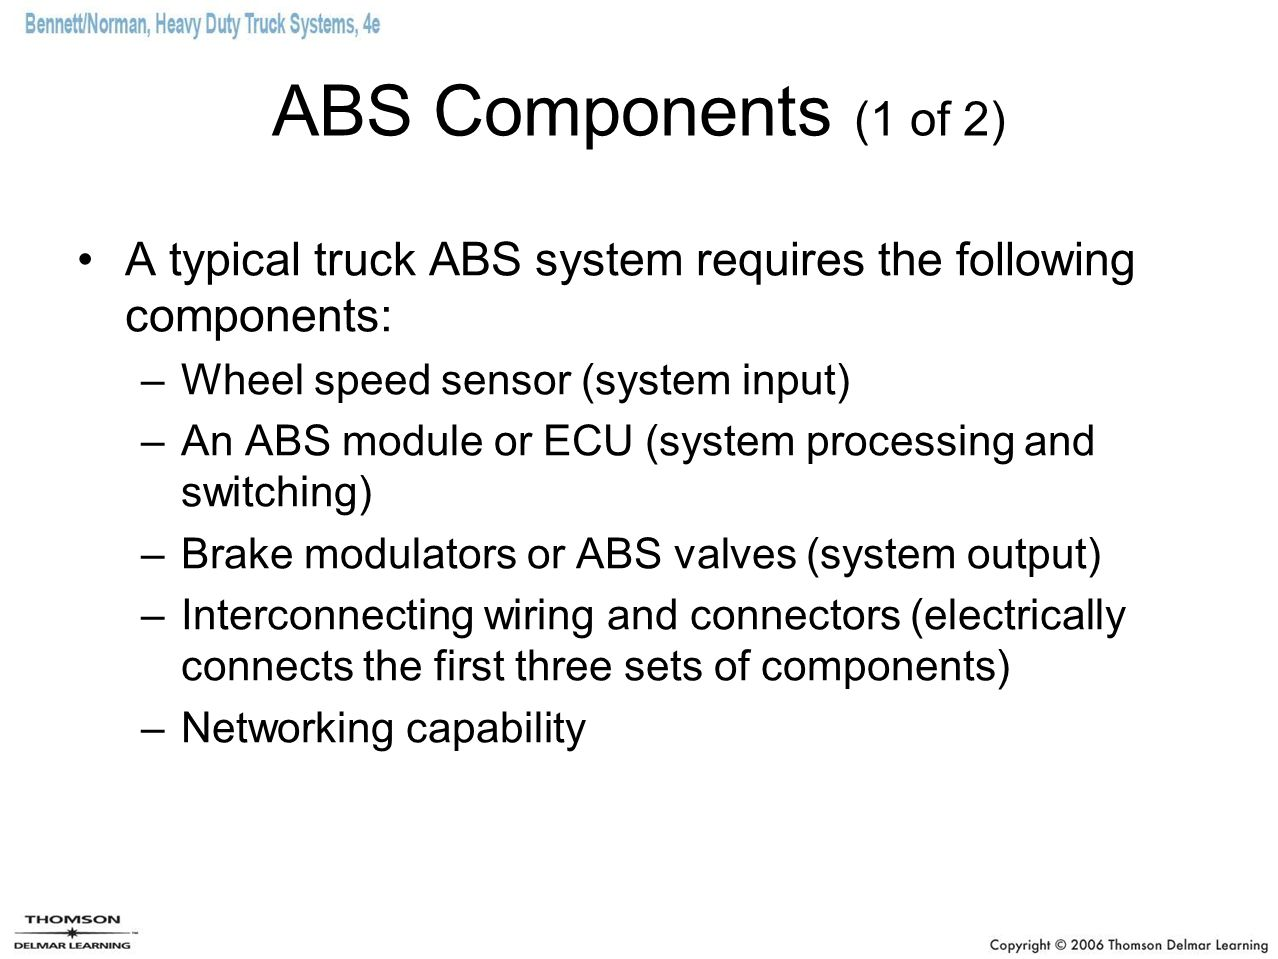 ABS Components (1 of 2) A typical truck ABS system requires the following components: Wheel speed sensor (system input)